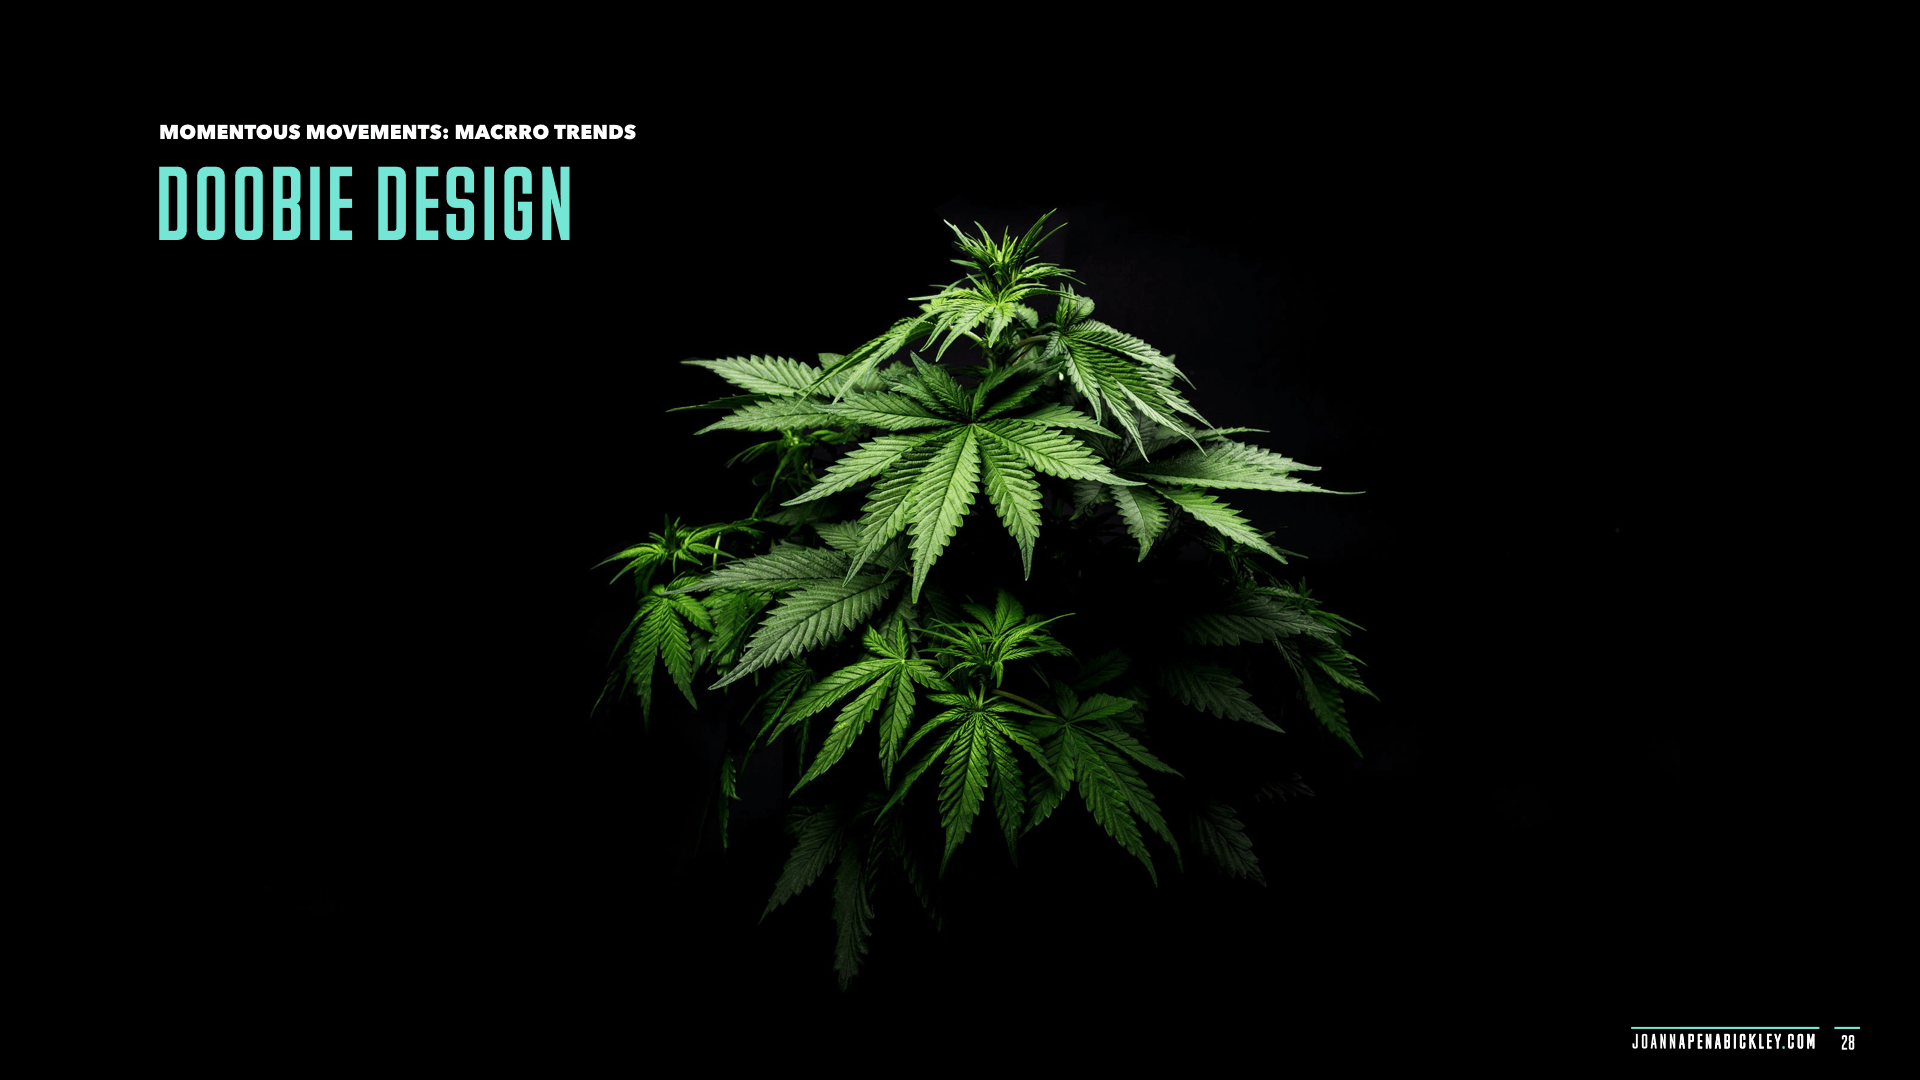 Doobie Design via @jpenabickley